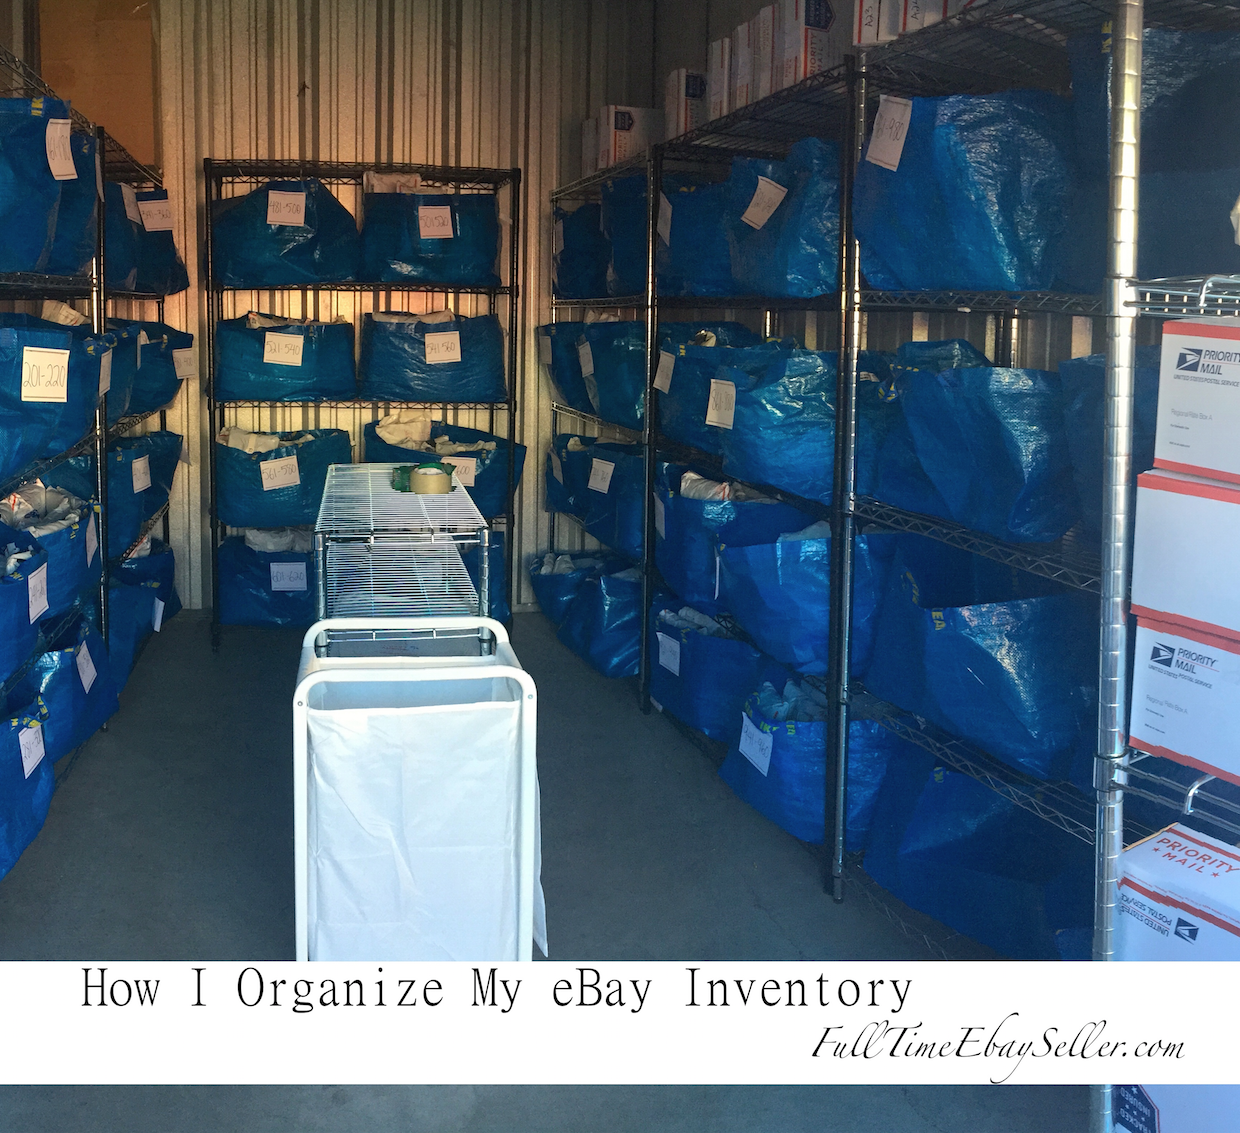 how they organize their ebay inventory using ikea blue bags and a numbered system [ 1240 x 1133 Pixel ]